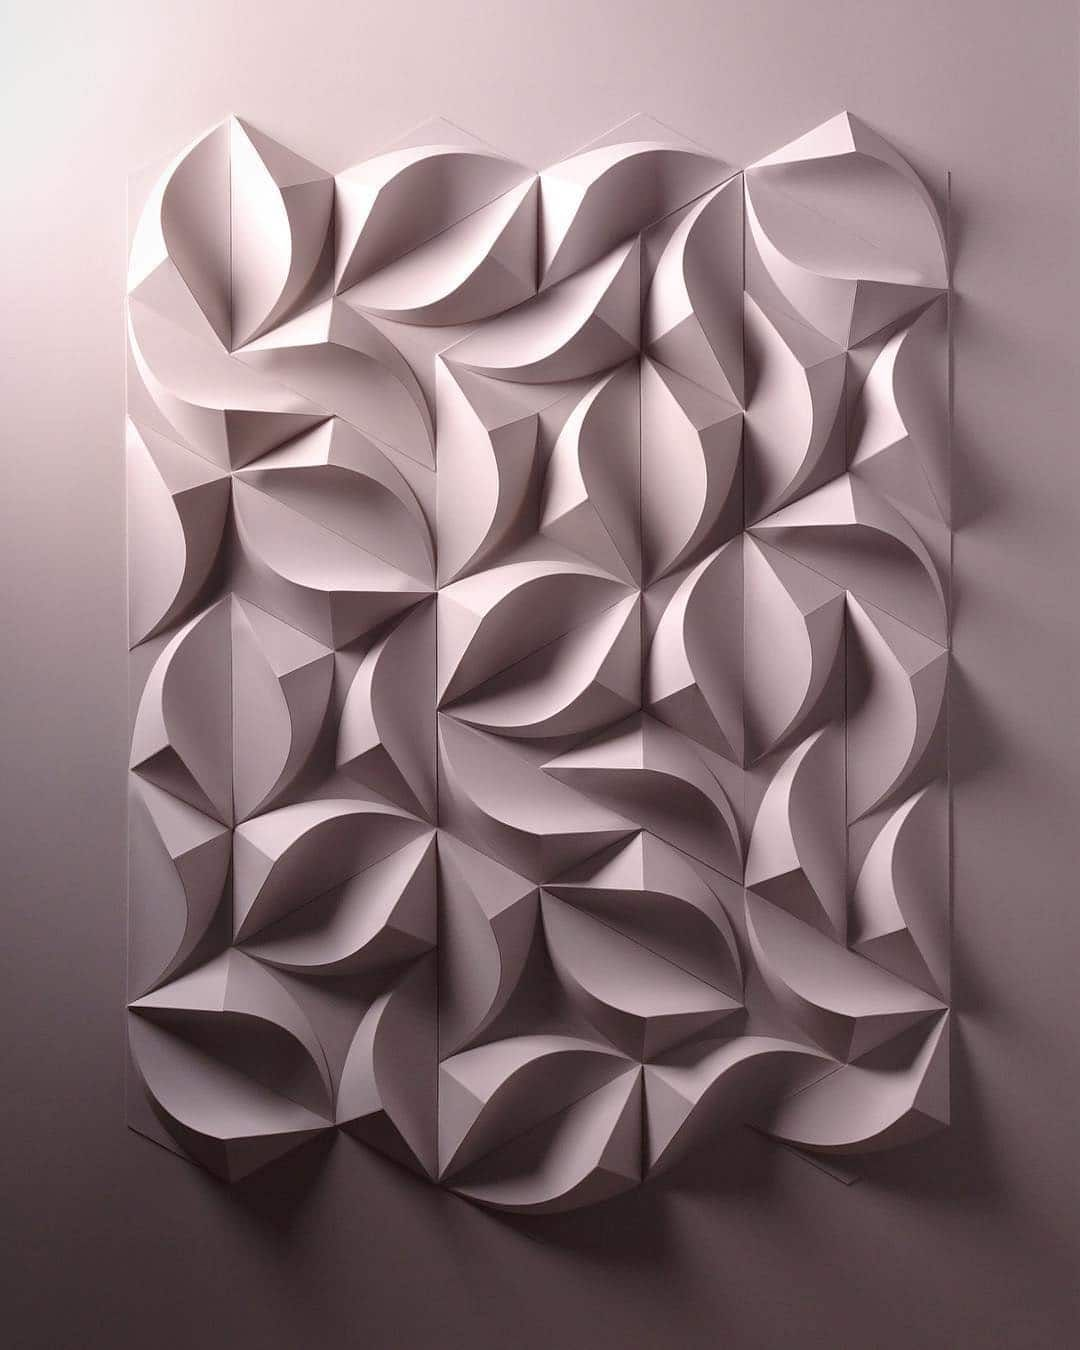 Paper Artist Engineers Incredible Relief Sculptures Entirely By Hand Paper Art Sculpture Paper Sculpture Paper Artist